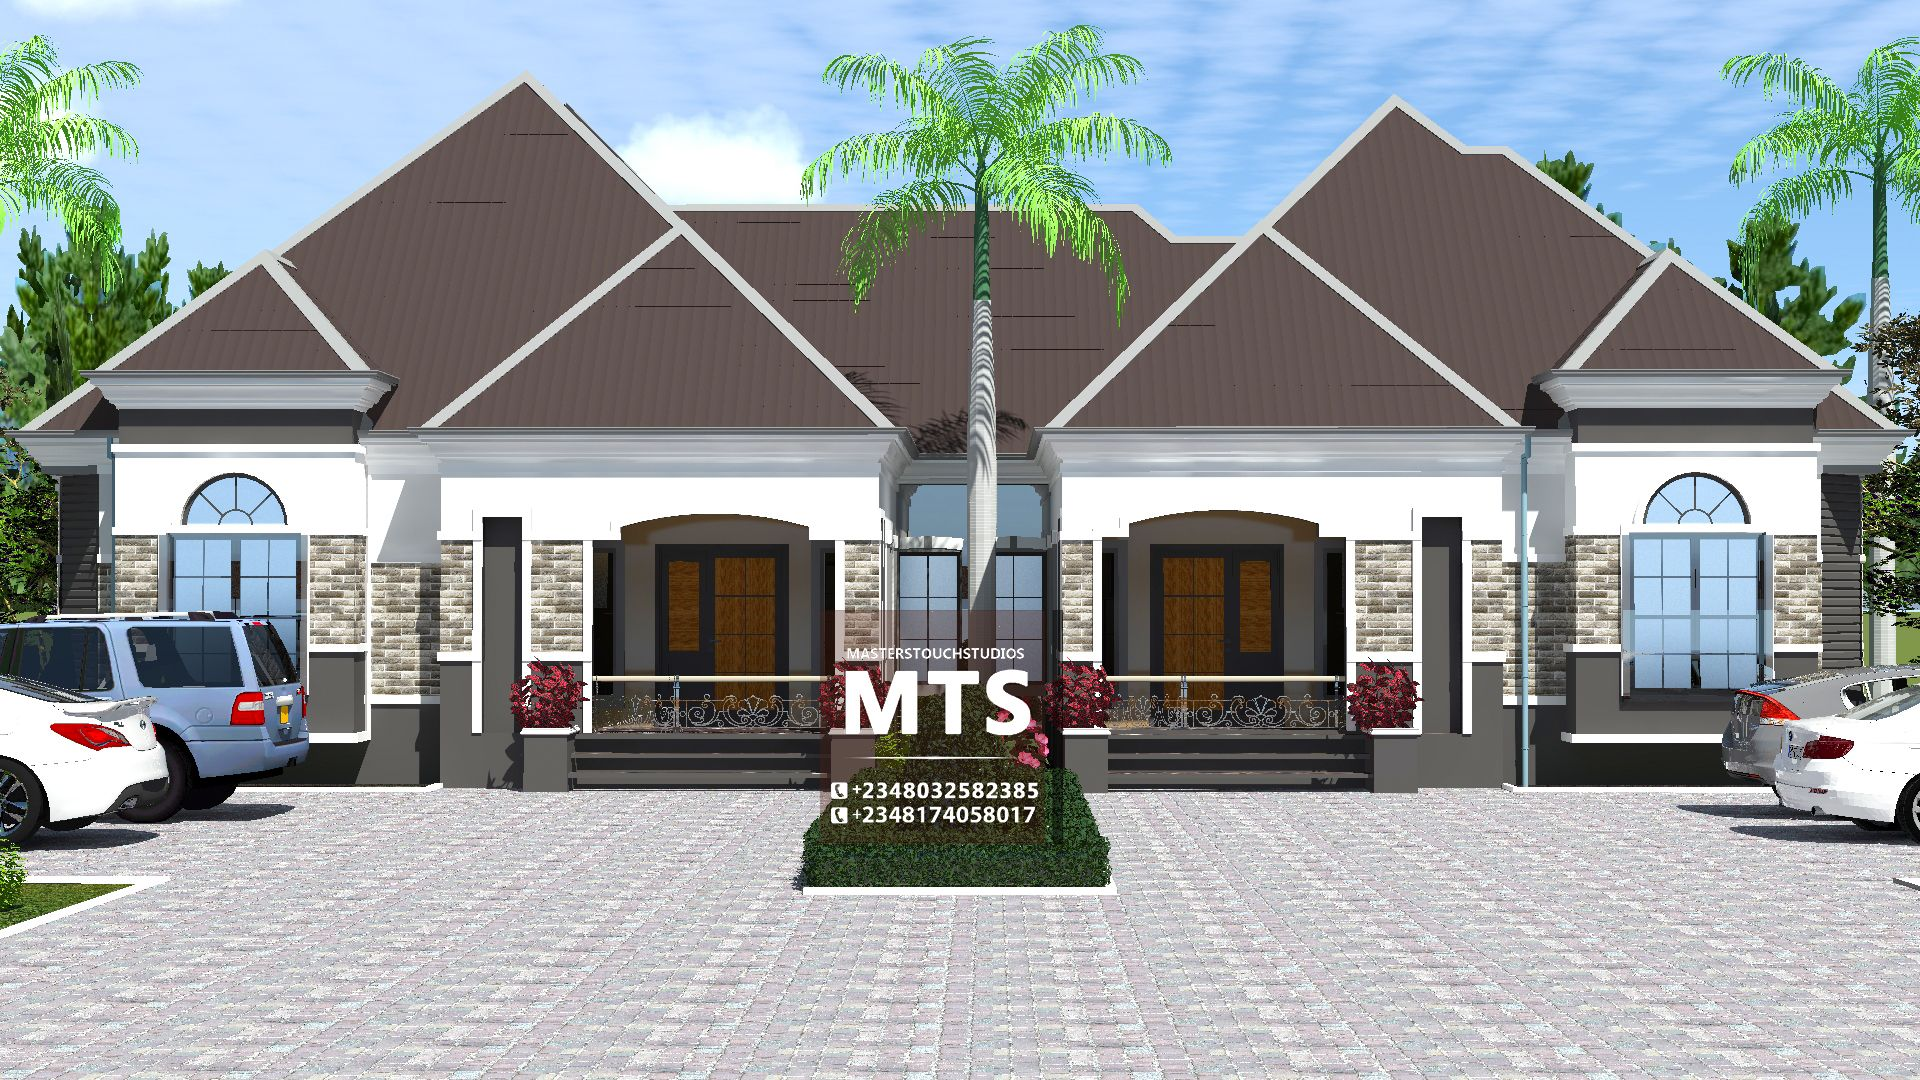 3 2 Bedroom Bungalow Rf B3201 In 2020 3 Bedroom Bungalow Bungalow Design Bungalow Floor Plans